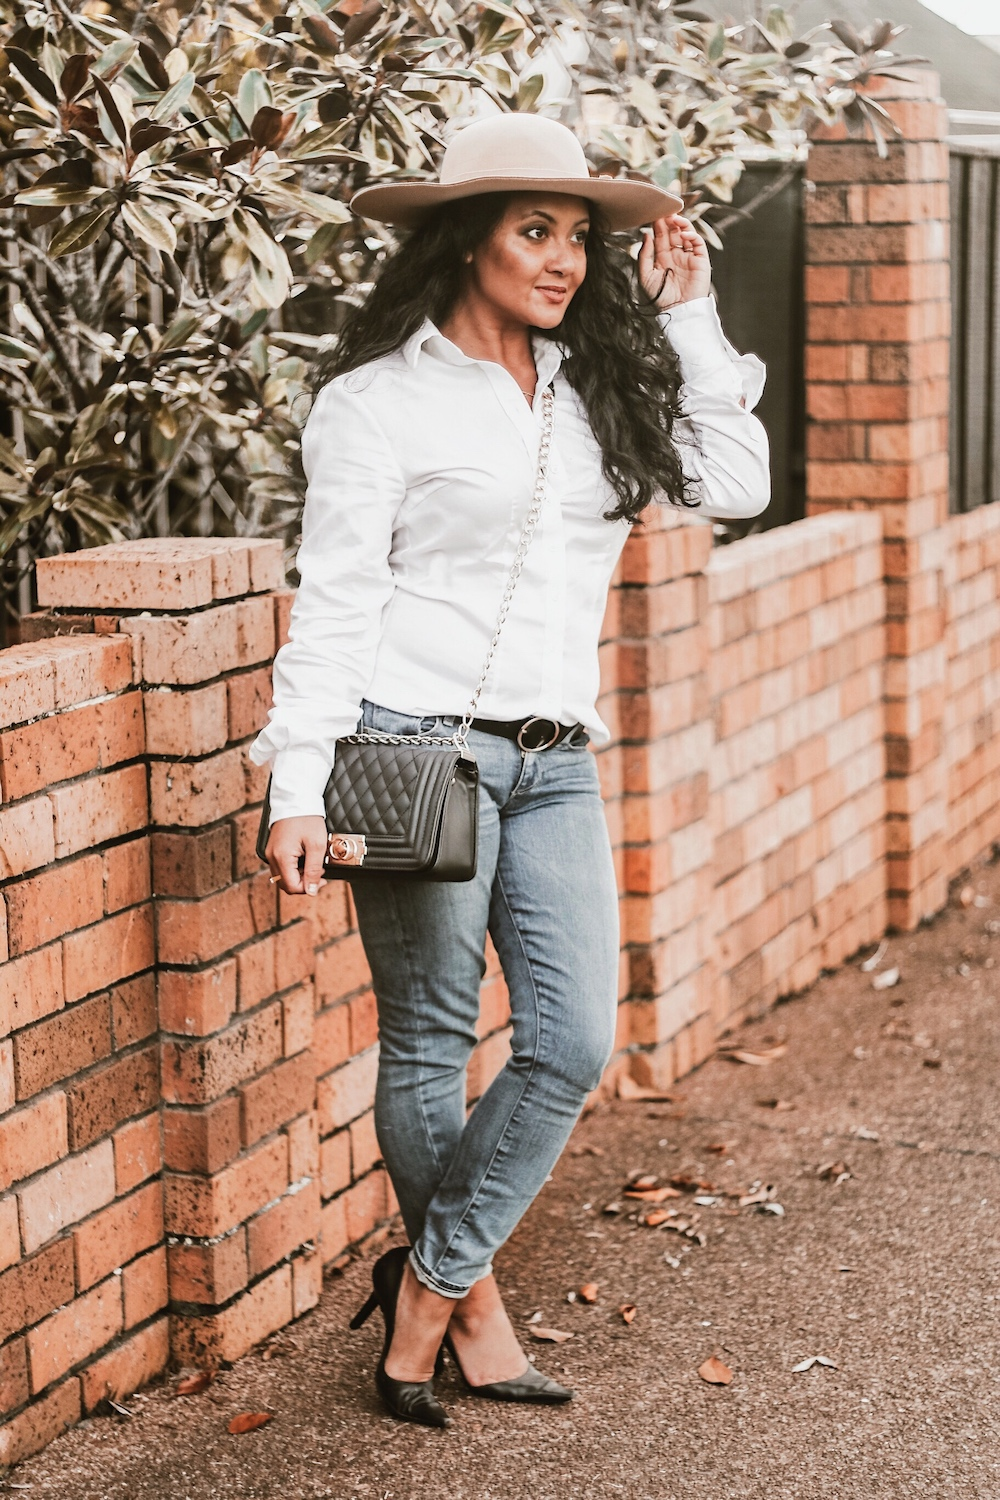 Parisian Style Best White Shirts For Women French Style Classic Women's White Shirt Paris Chic Style Button Down Long Sleeve Shirt White Skinny Jeans Auckland New Zealand StreetStyle Wear How to dress like a Parisian French Girl Style